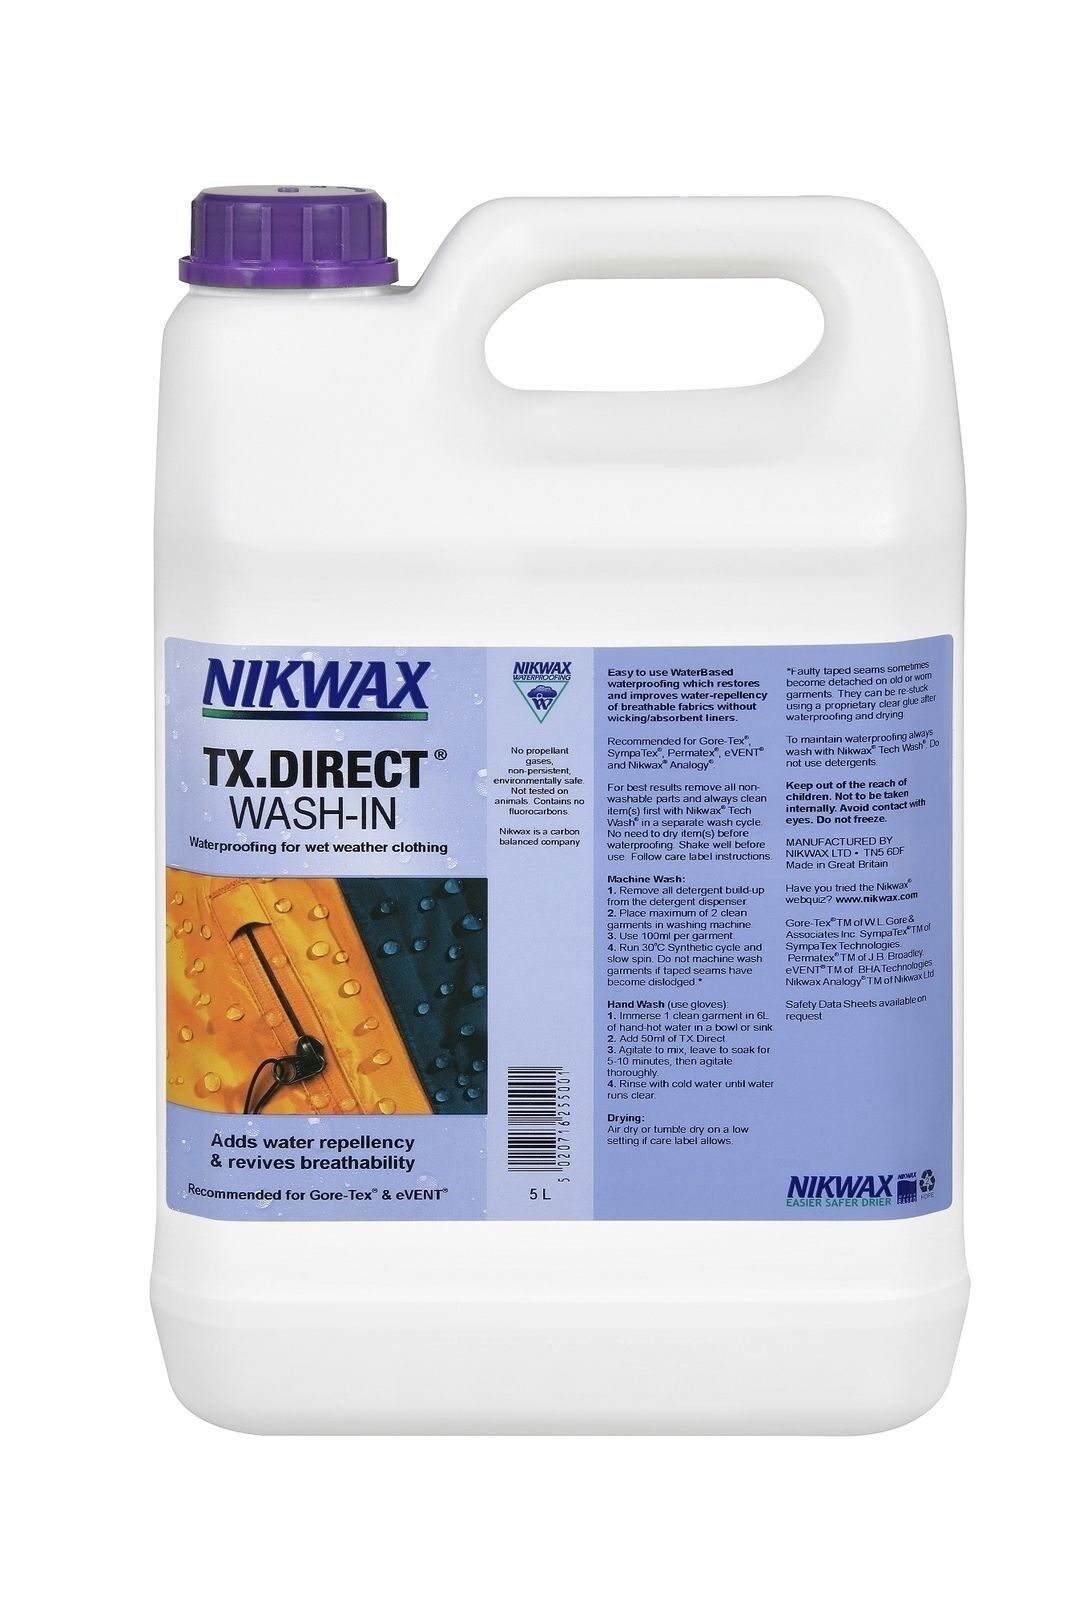 5 Litre Nikwax TX Direct Wash-In Waterproofing for Outdoor clothing Re-Proofer